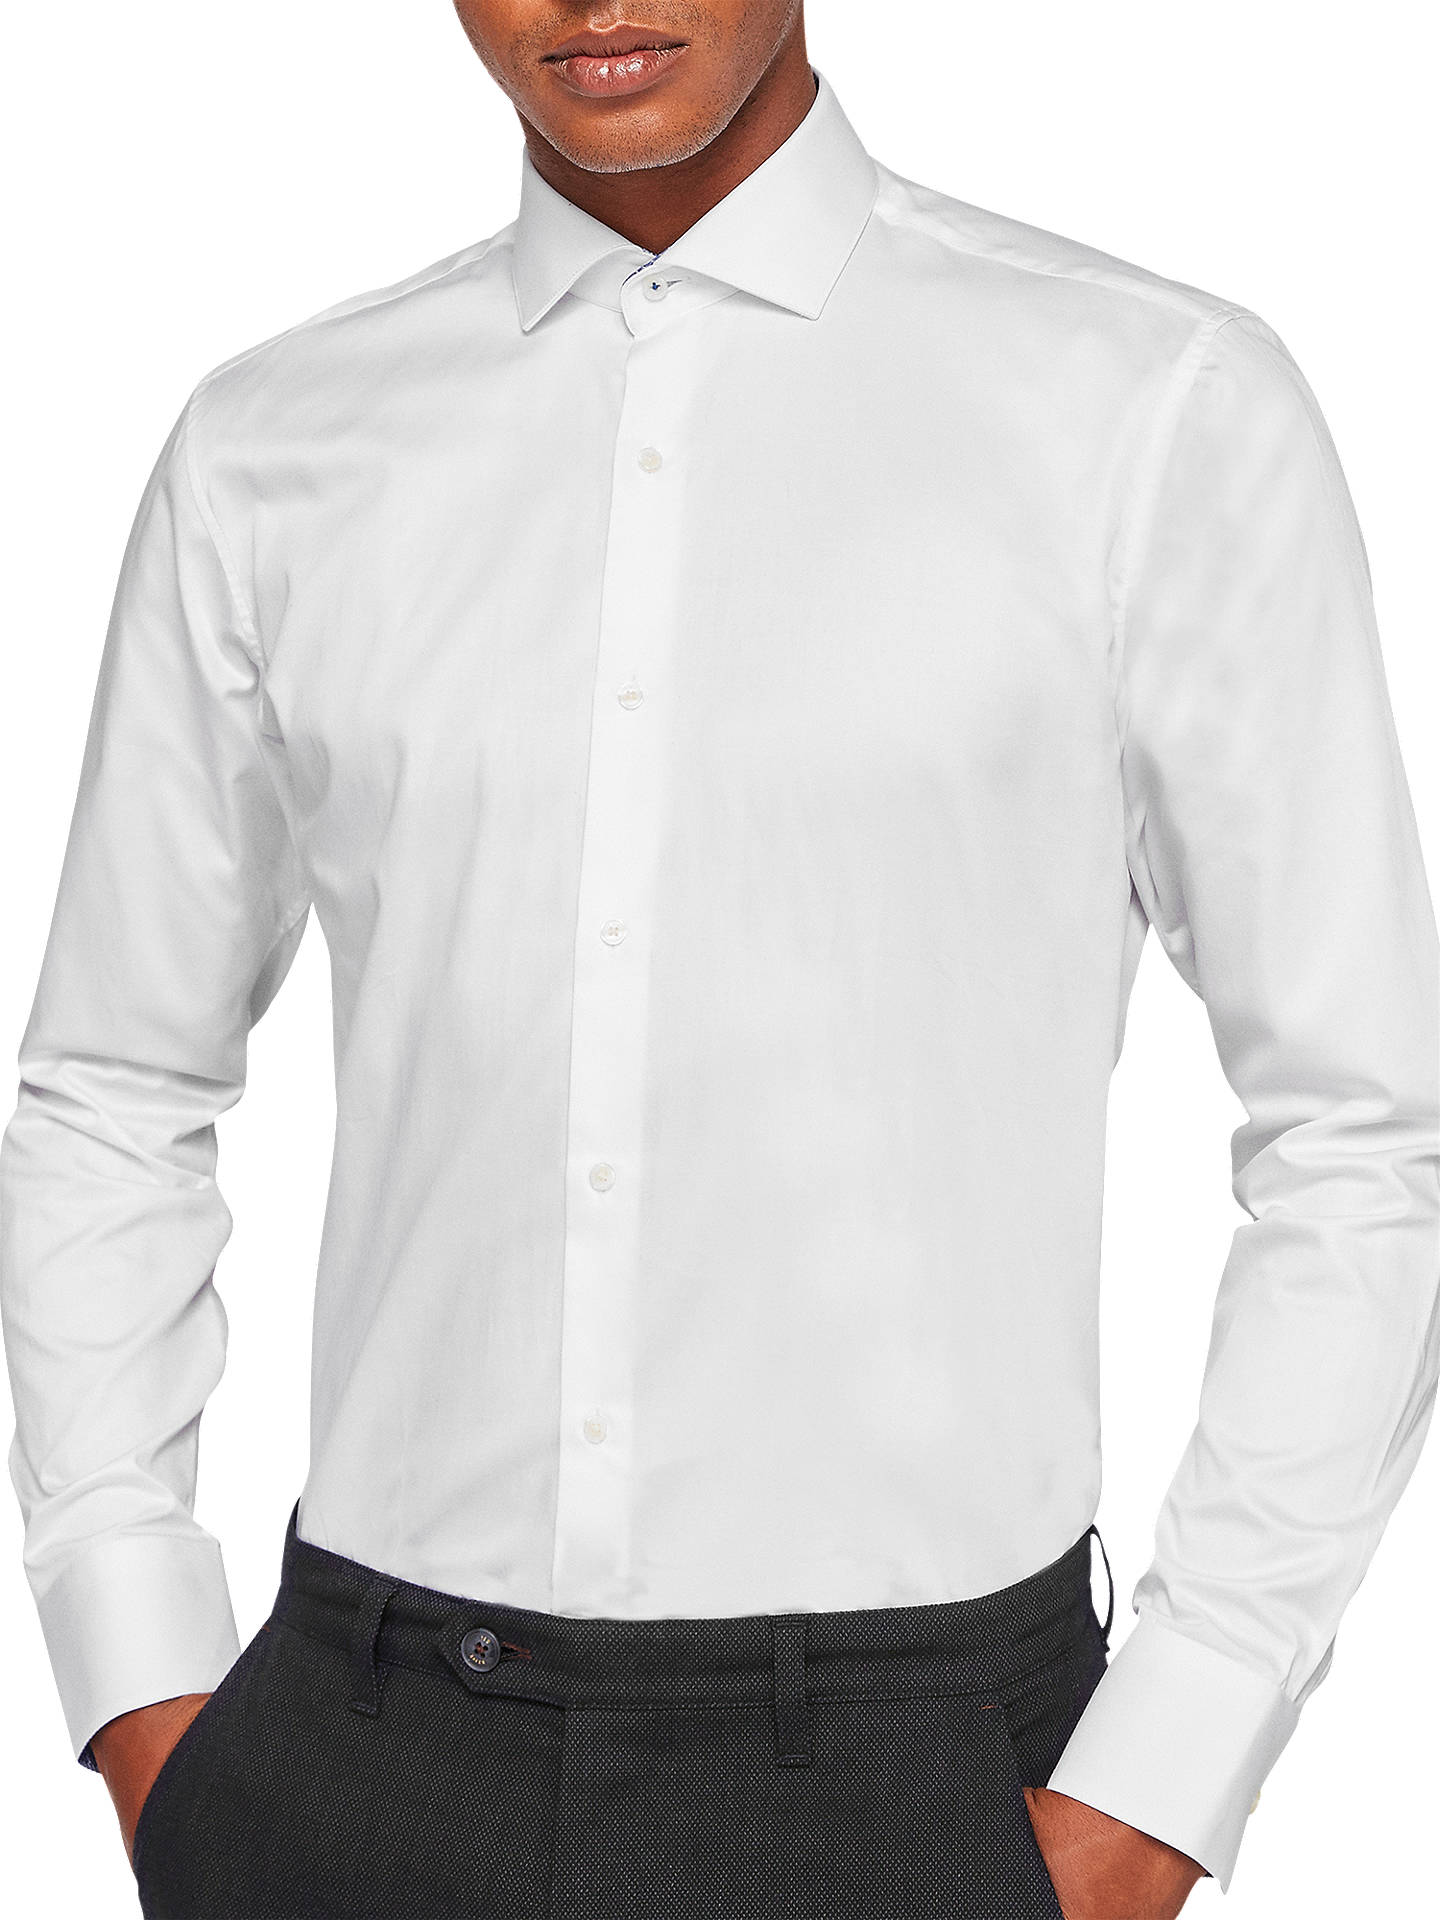 8608aa0fd92f Ted Baker Rosest Tailored Fit Shirt at John Lewis   Partners